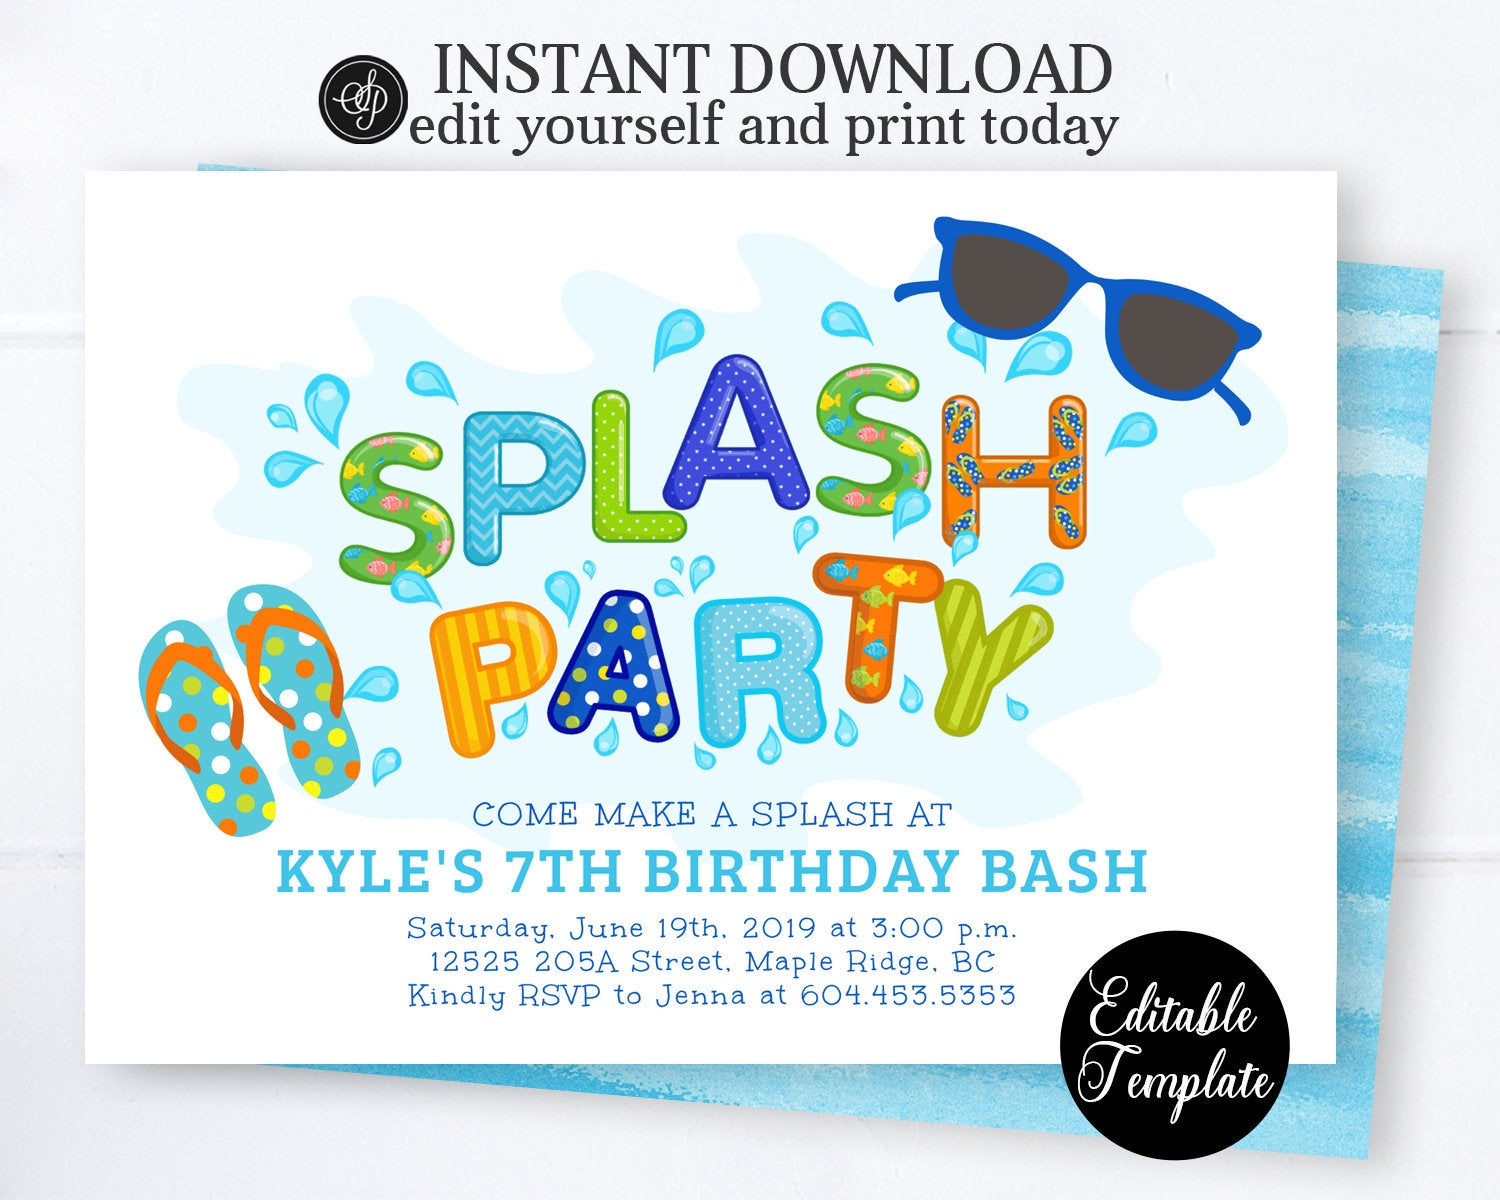 photo about Birthday Party Invitations Printable referred to as Splash Get together Birthday Invitation Boy, Splash Pad Birthday Bash Invitation, Printable Summertime Social gathering Invite, Instantaneous Down load SP0039